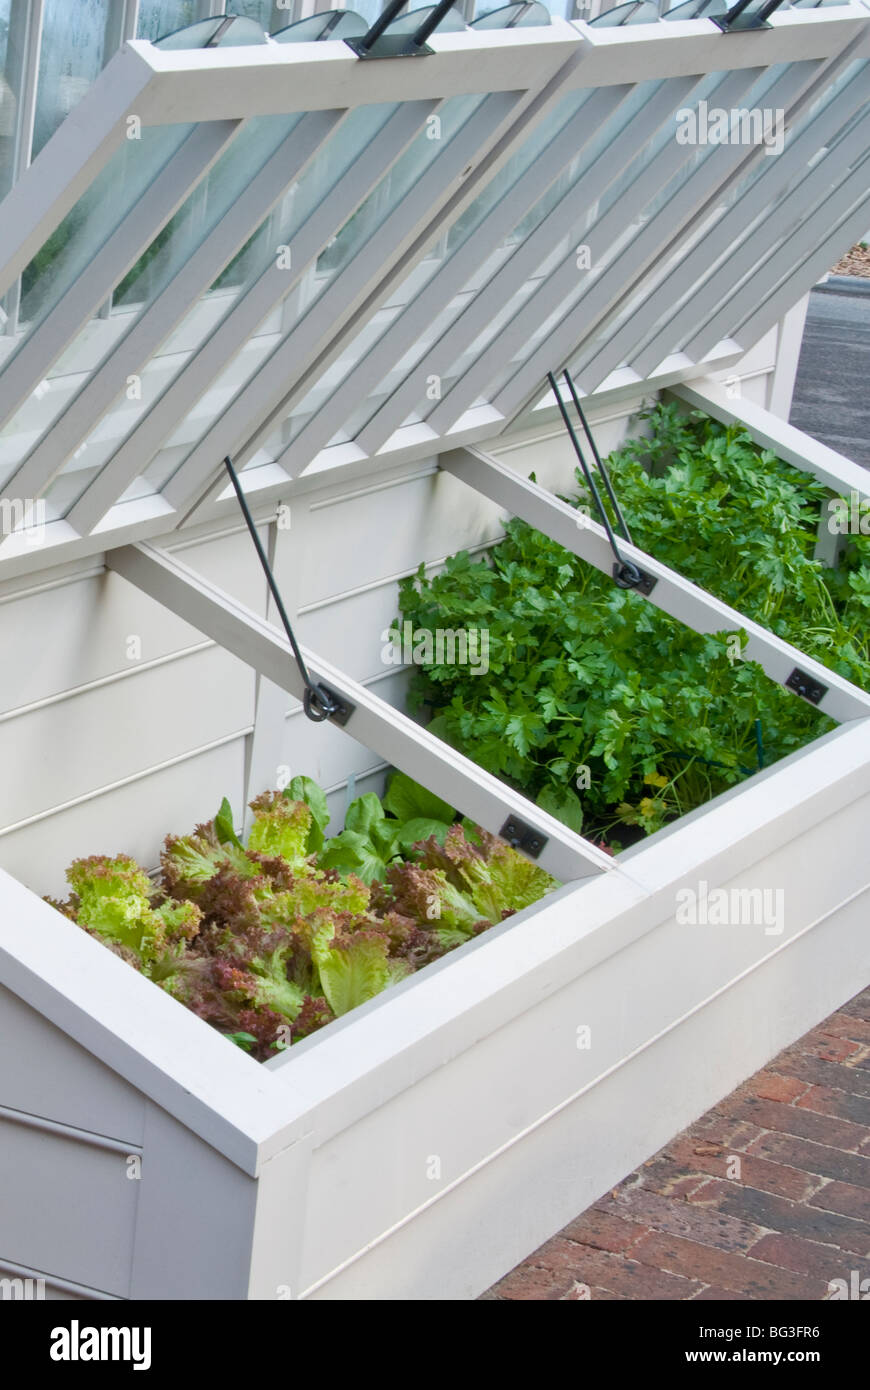 Cold Frame Of Young Garden Vegetable Plants Being Protected With